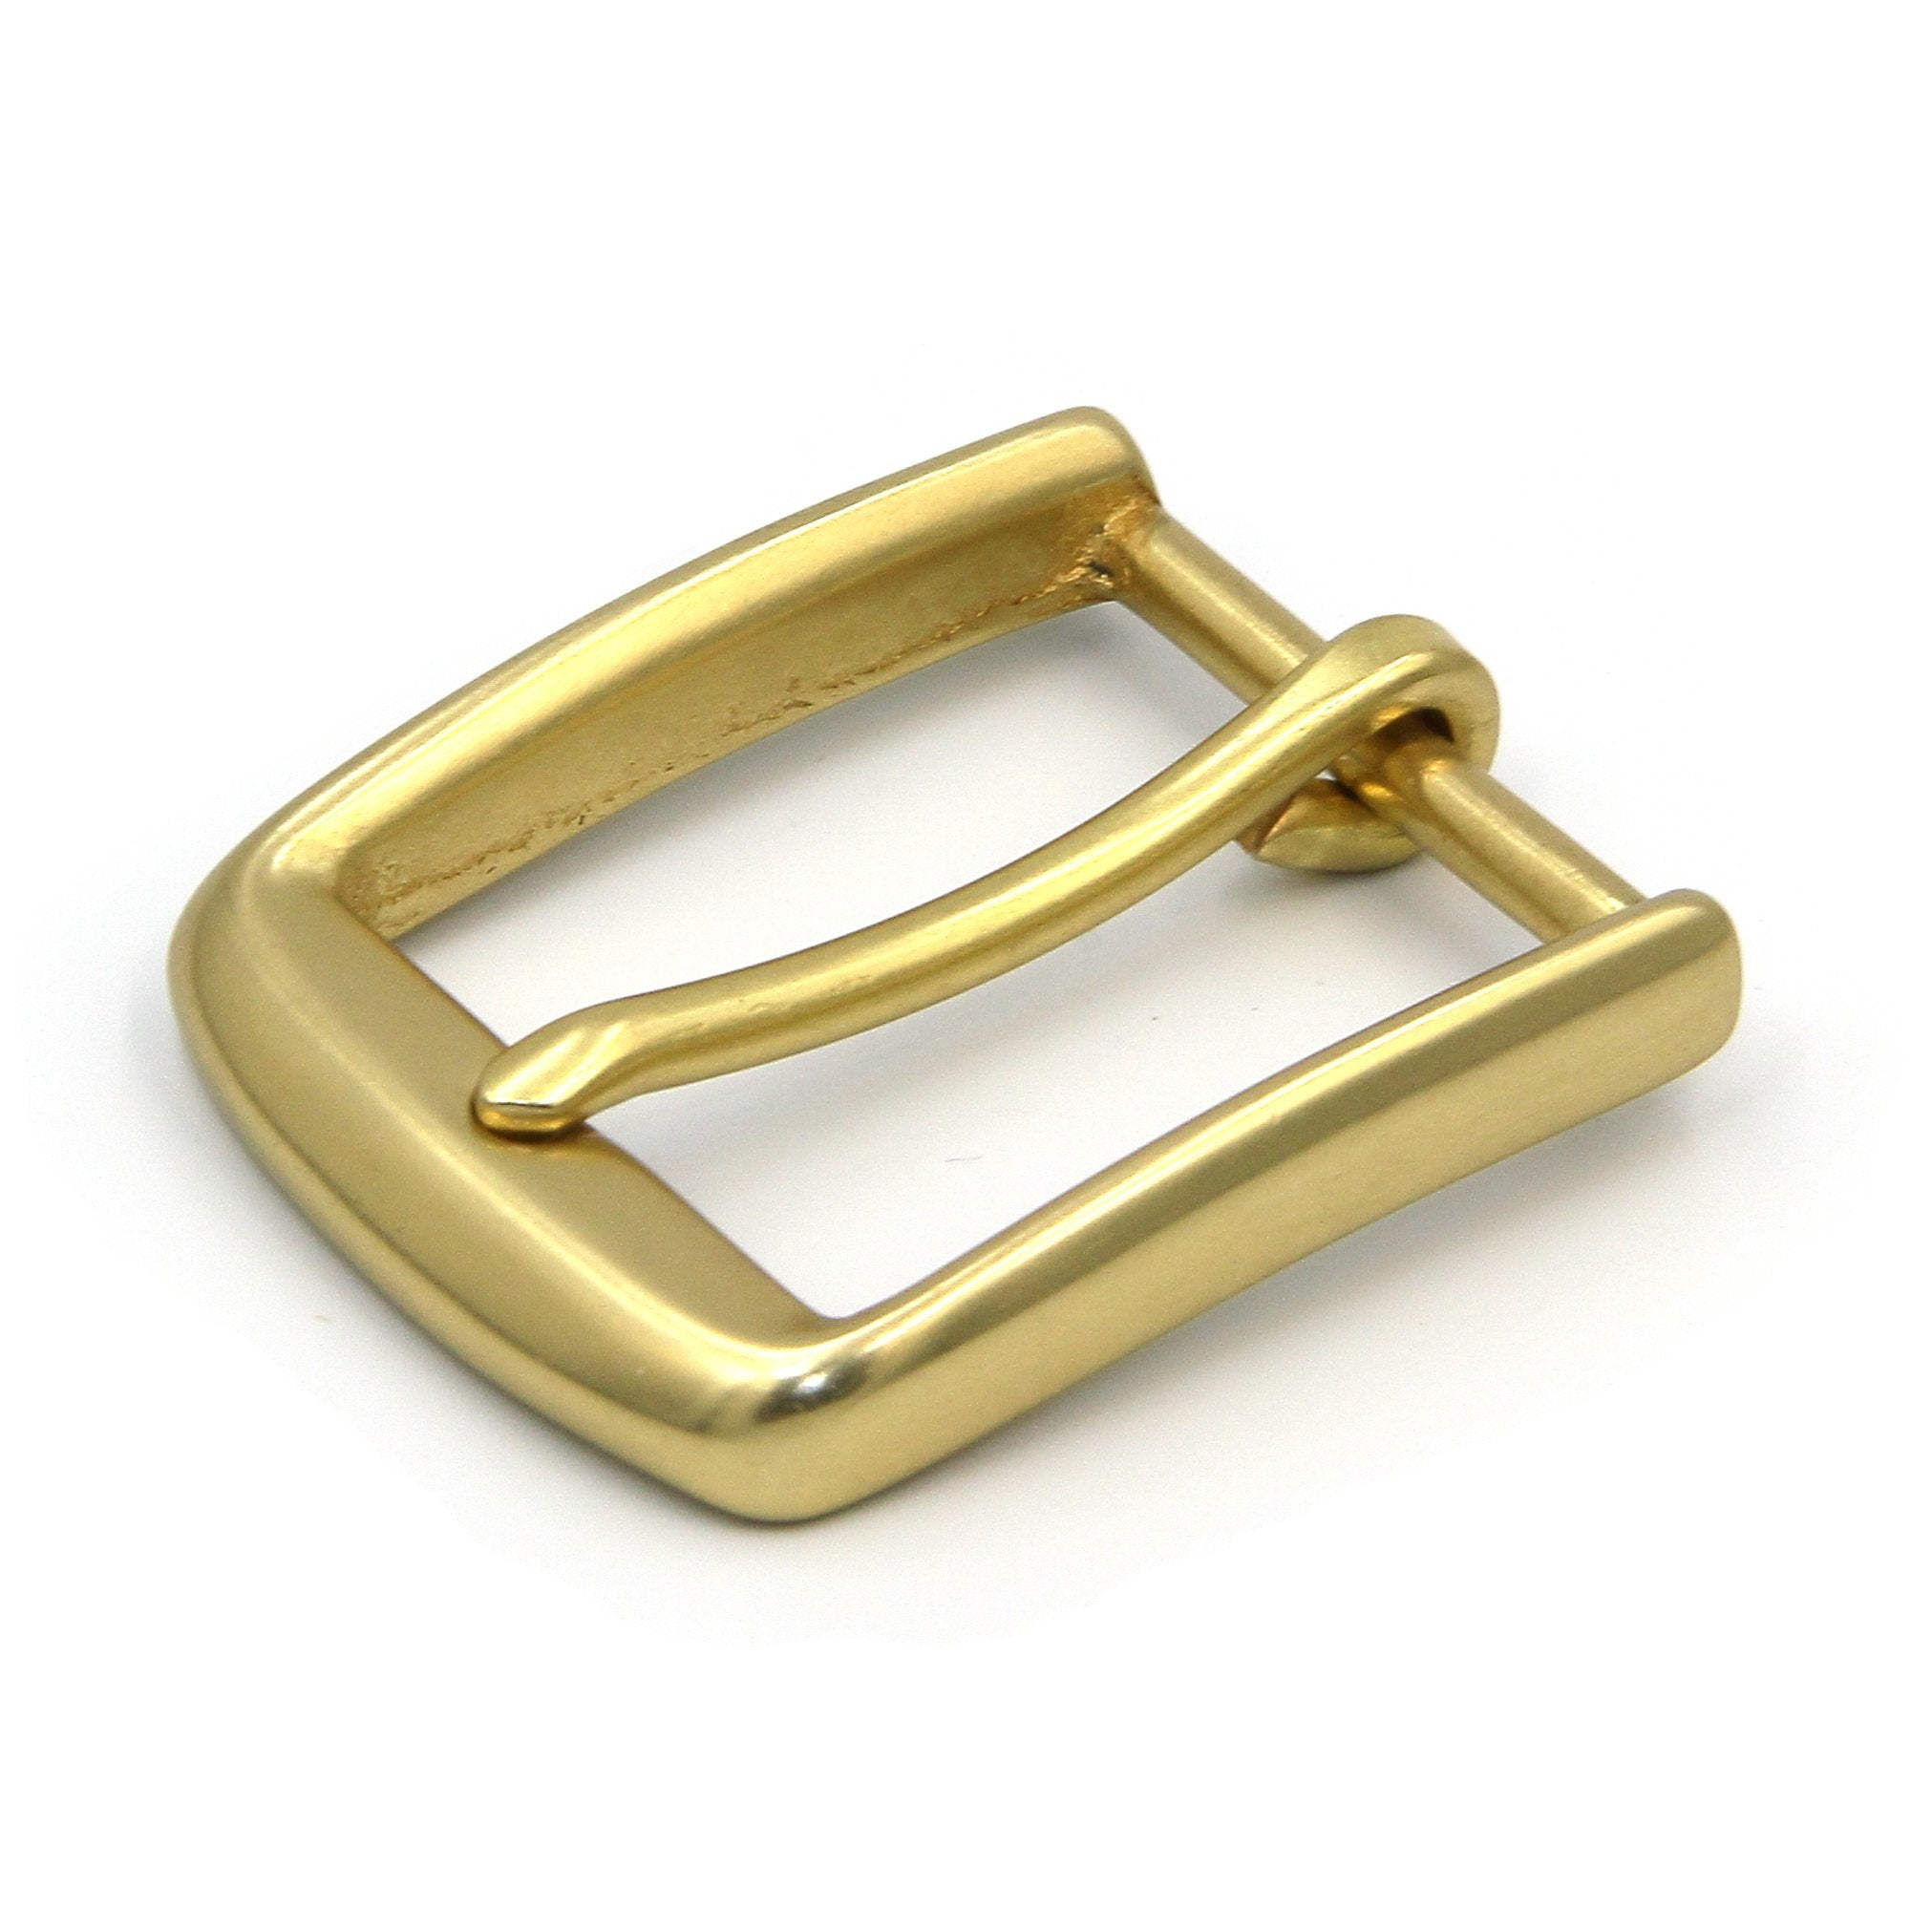 Solid Brass BELT Buckle 36-40MM - Metal Field